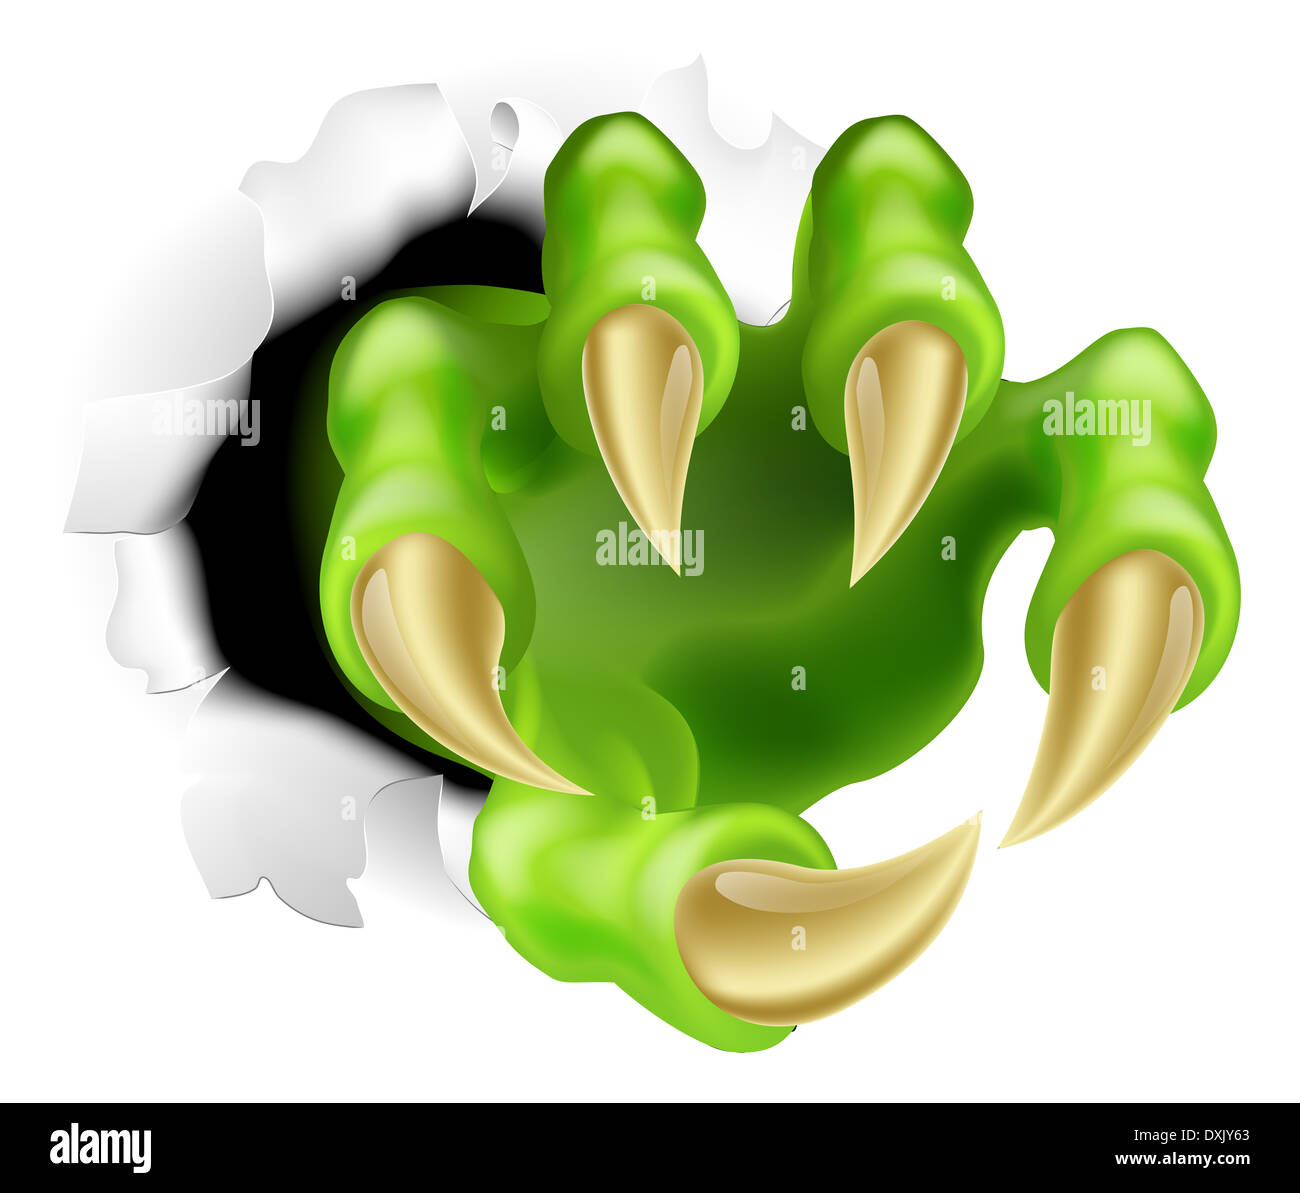 Monster claw hand ripping a tear through the background - Stock Image